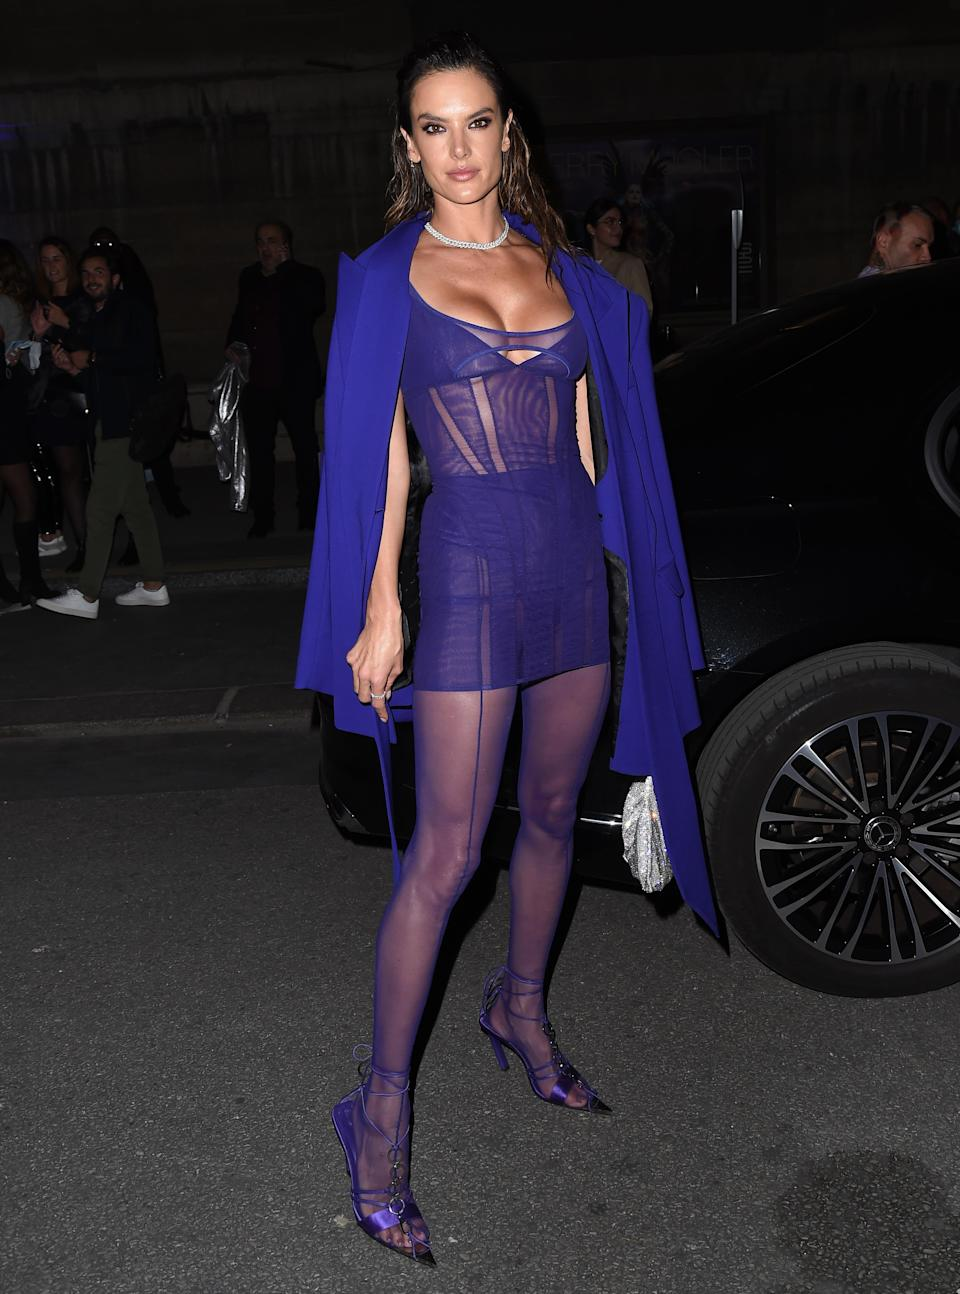 """Alessandra Ambrosio arrives at a photocall for """"Thierry Mugler : Couturissime"""" at Paris Fashion Week 2021. - Credit: SplashNews.com"""